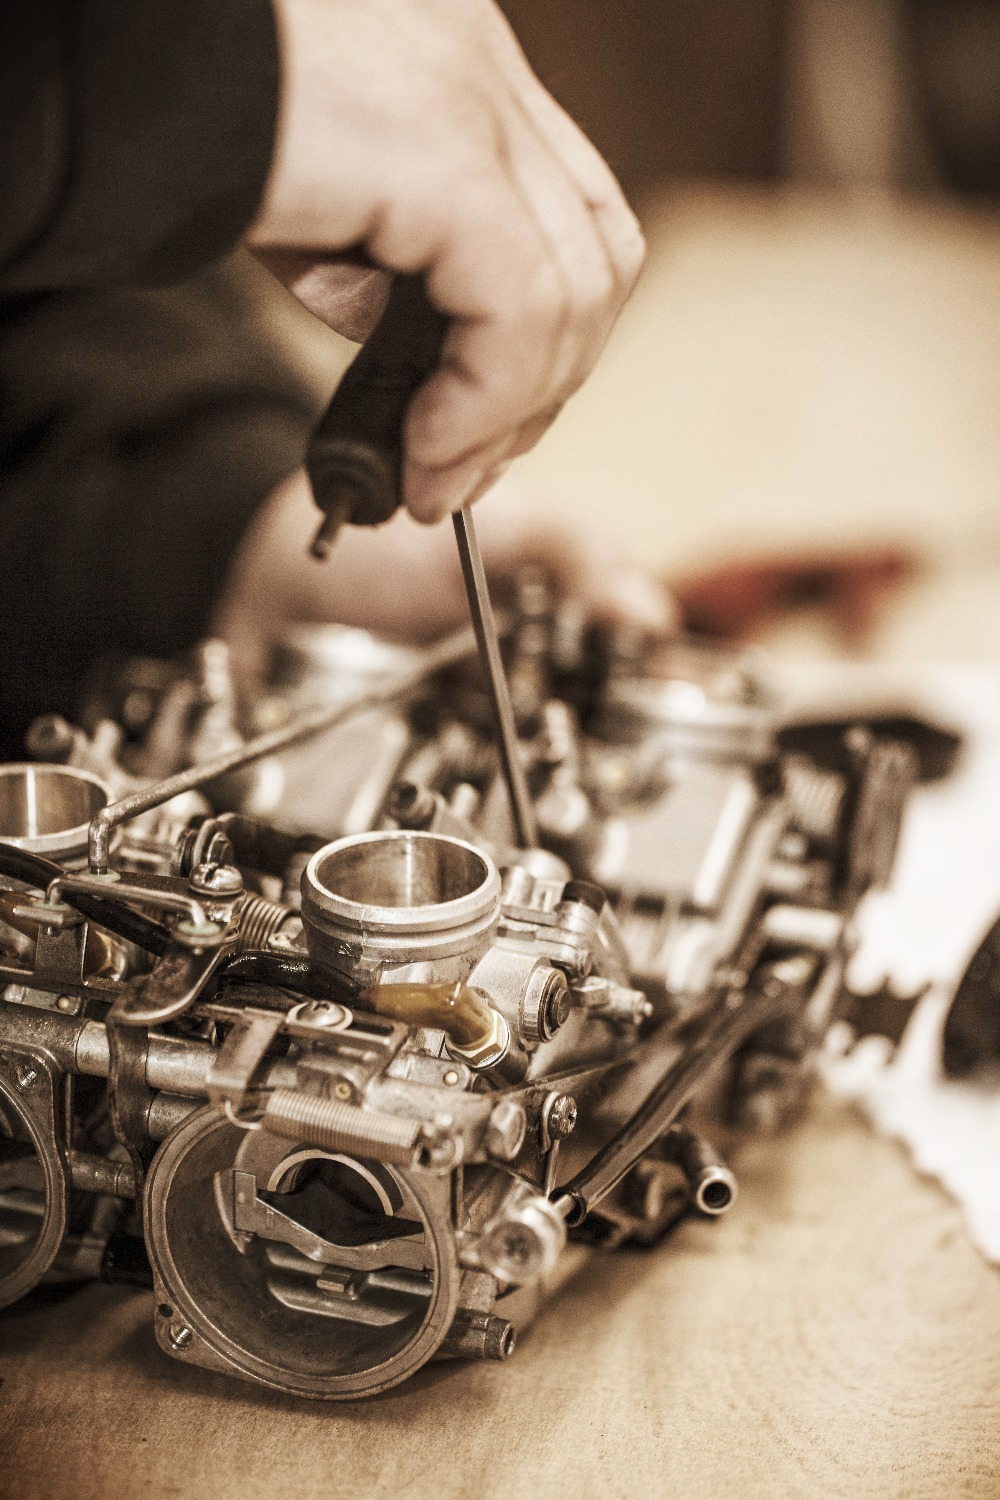 Carburetor Cleaning